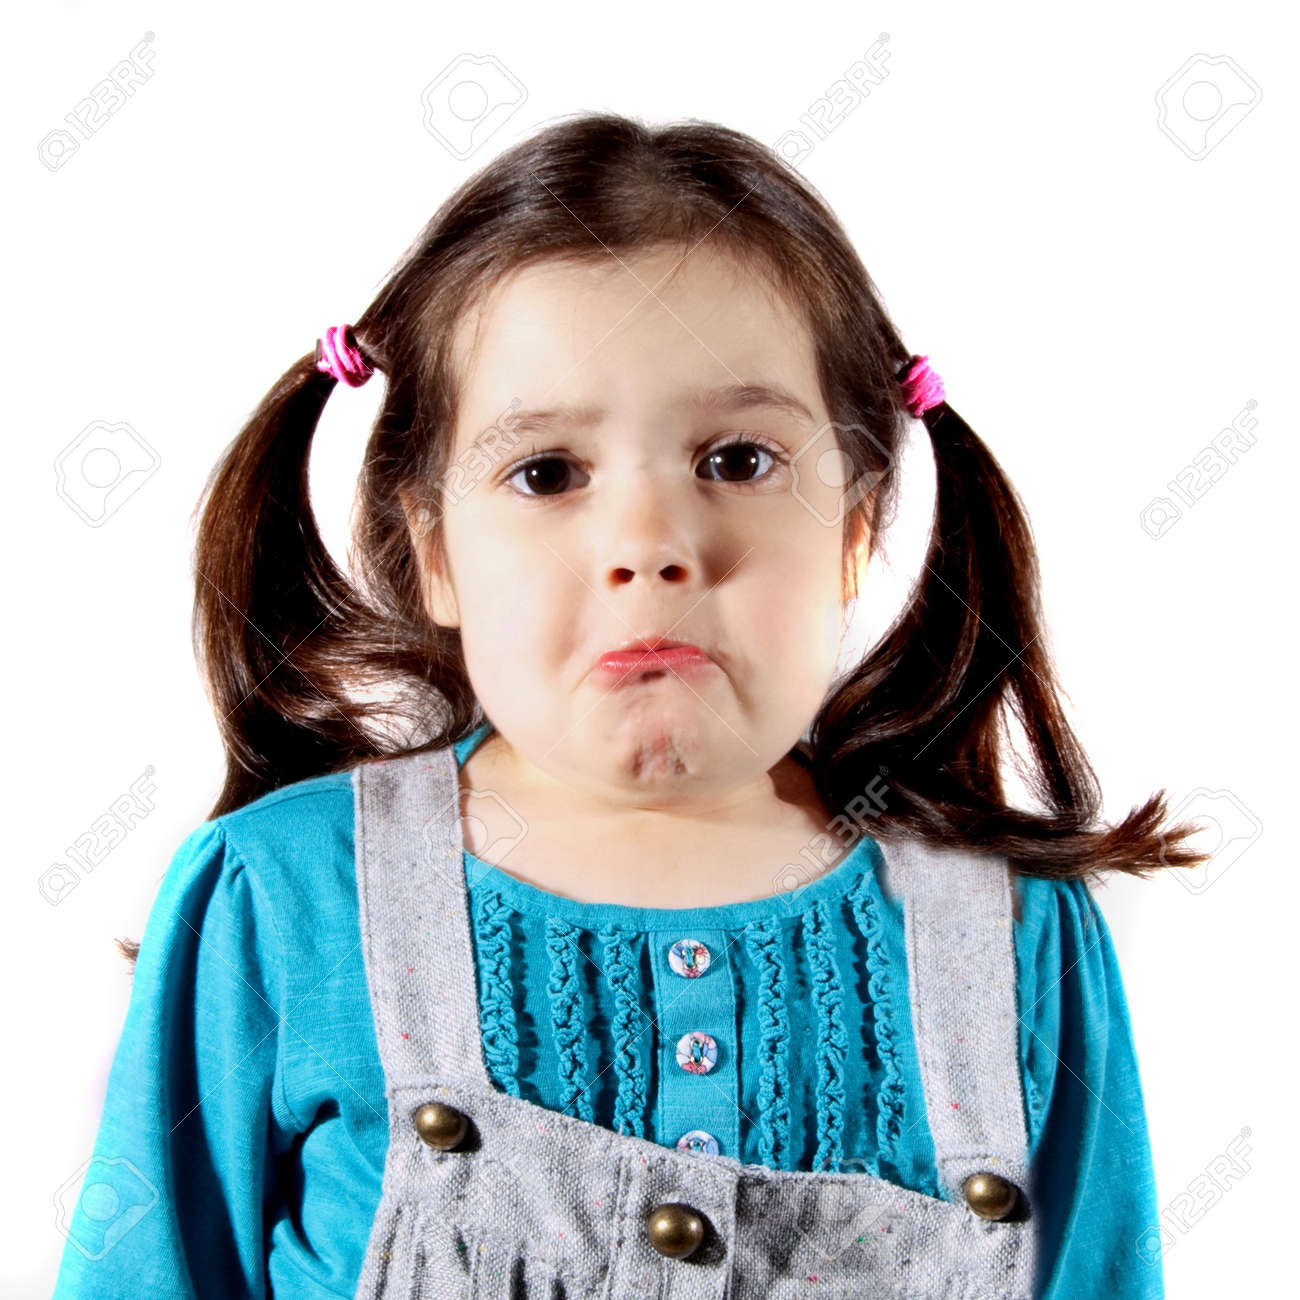 young girl upset and about to cry stock photo picture and royalty